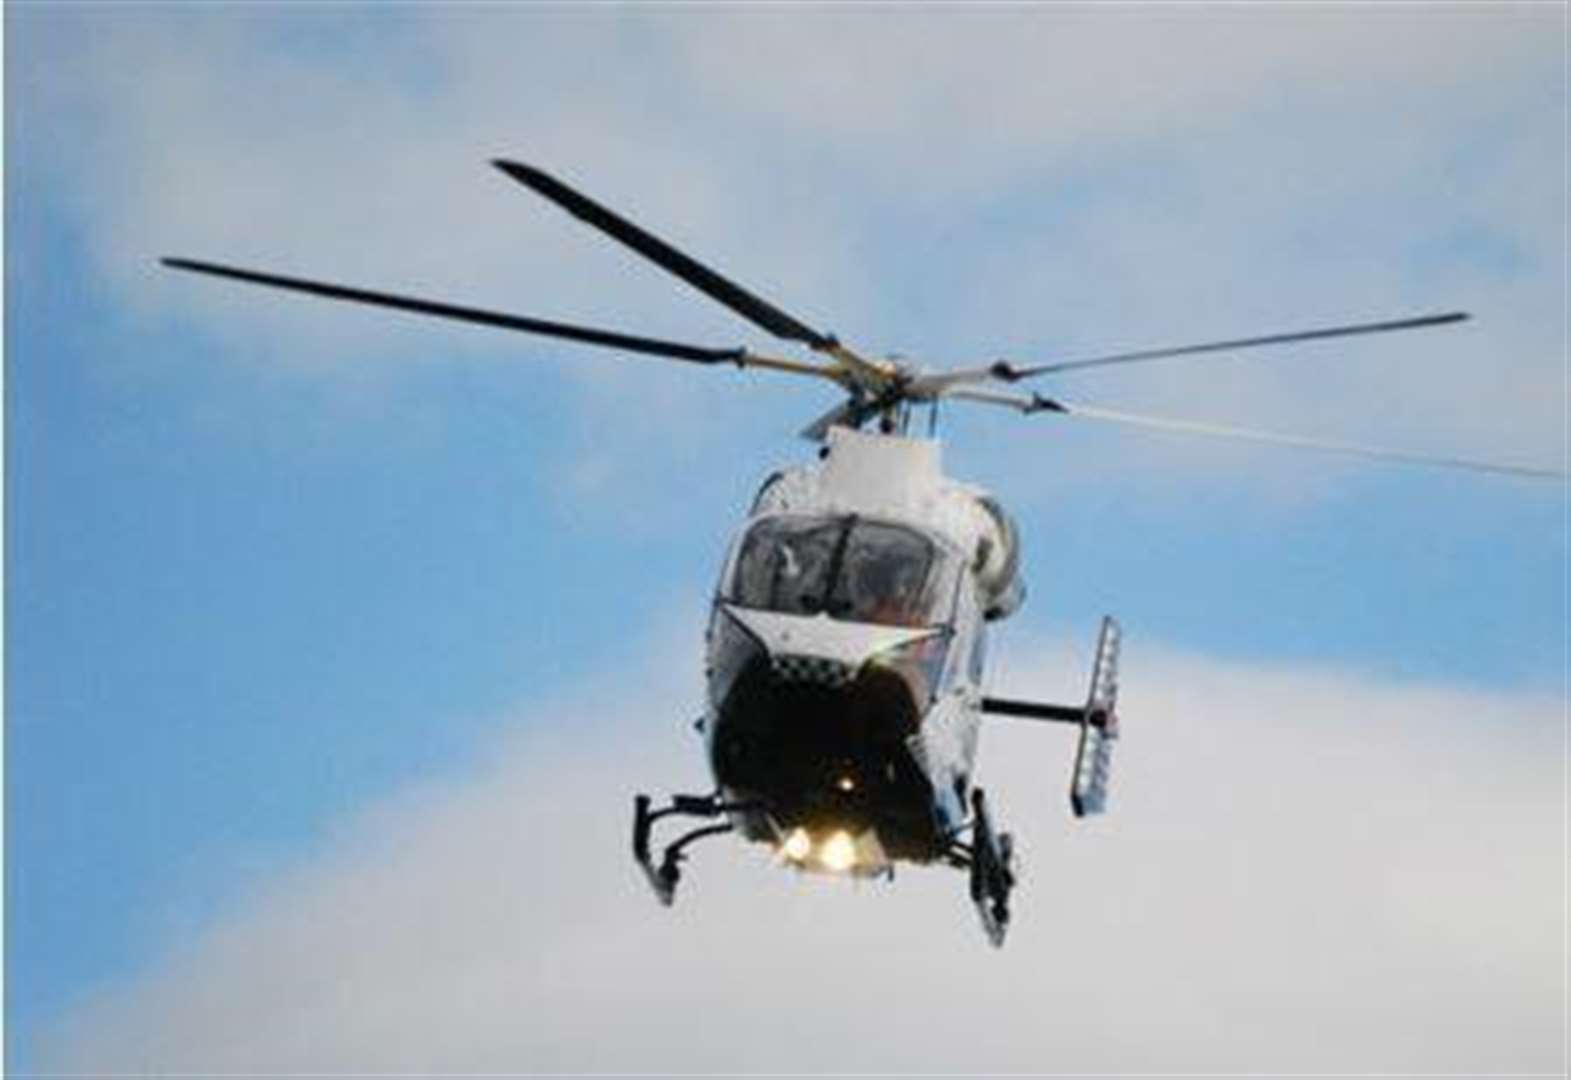 Motorcyclist airlifted to hospital after crash